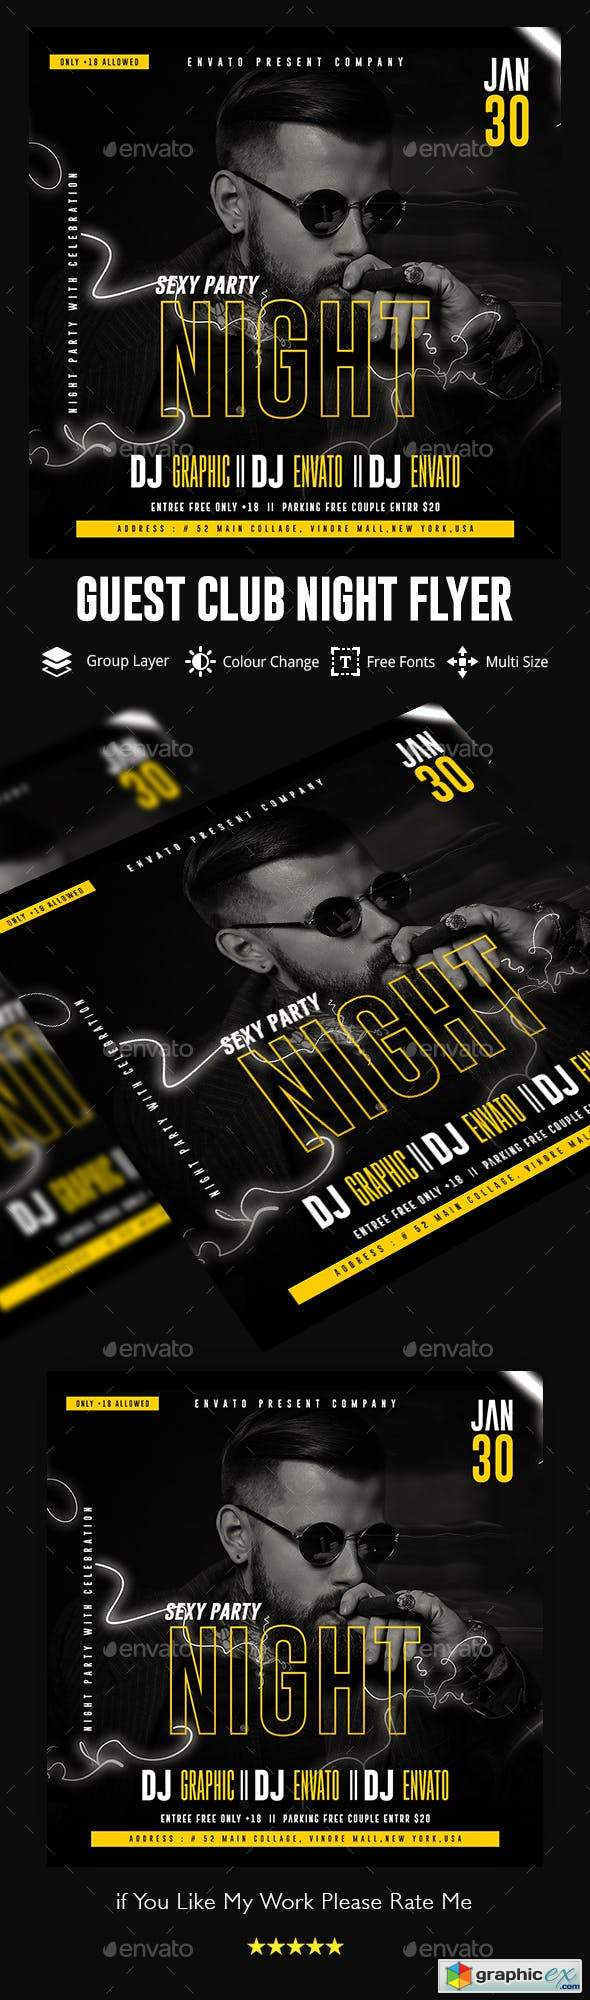 Guest Dj Night Flyer Template 23126639